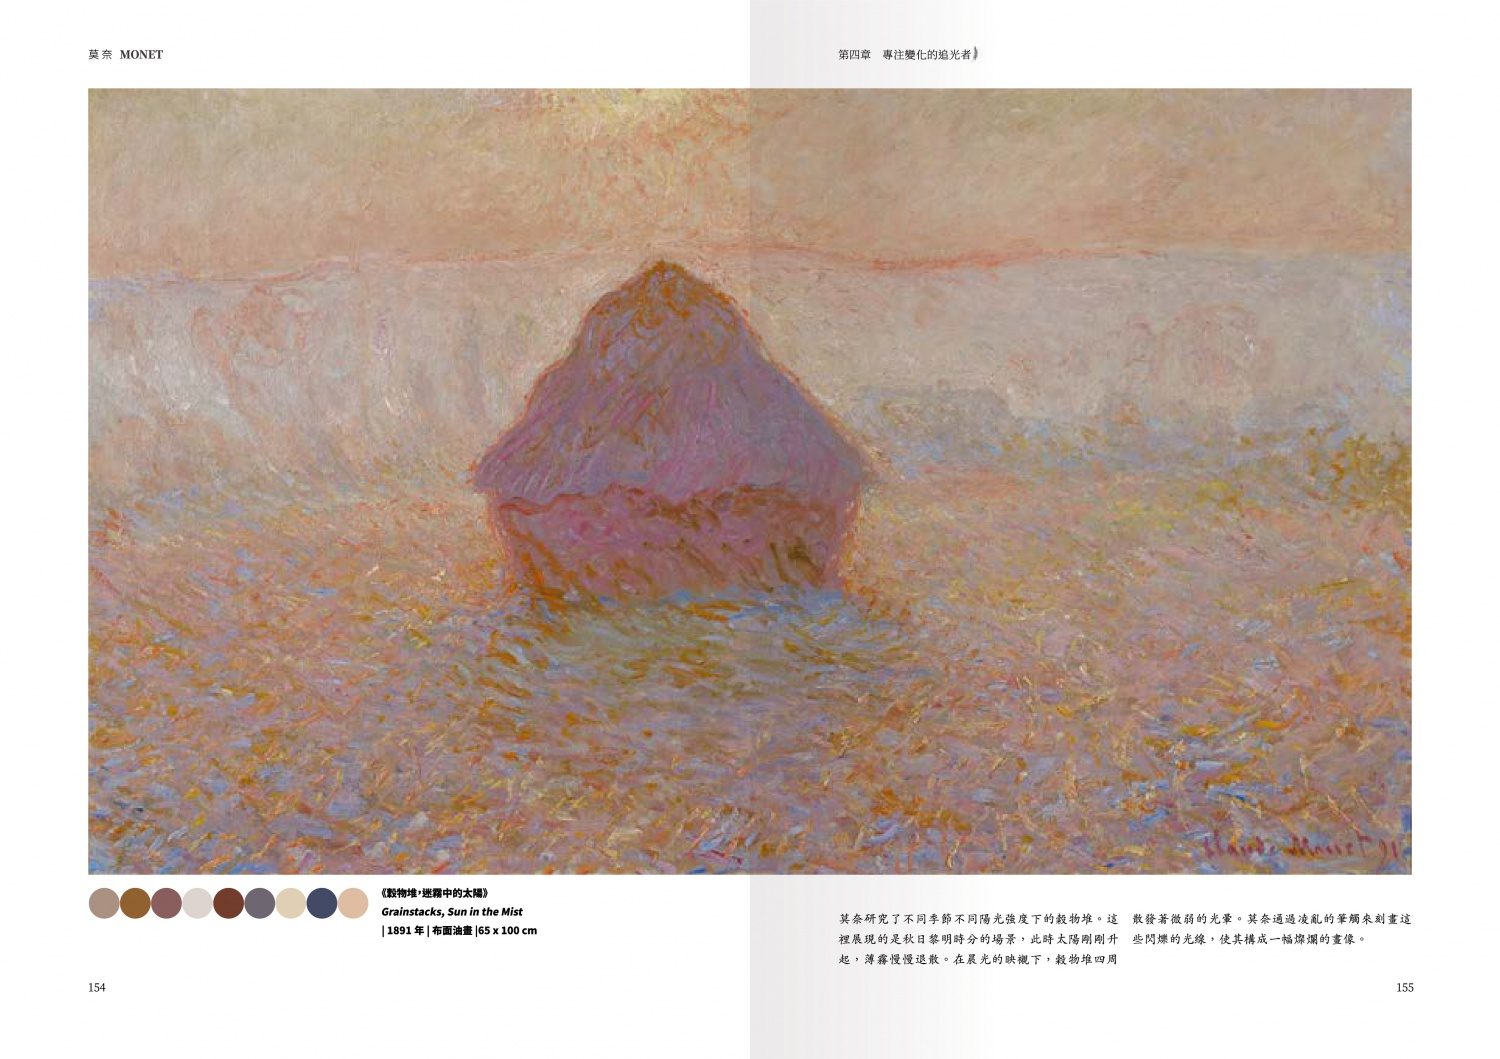 The Series of Artists: Monet